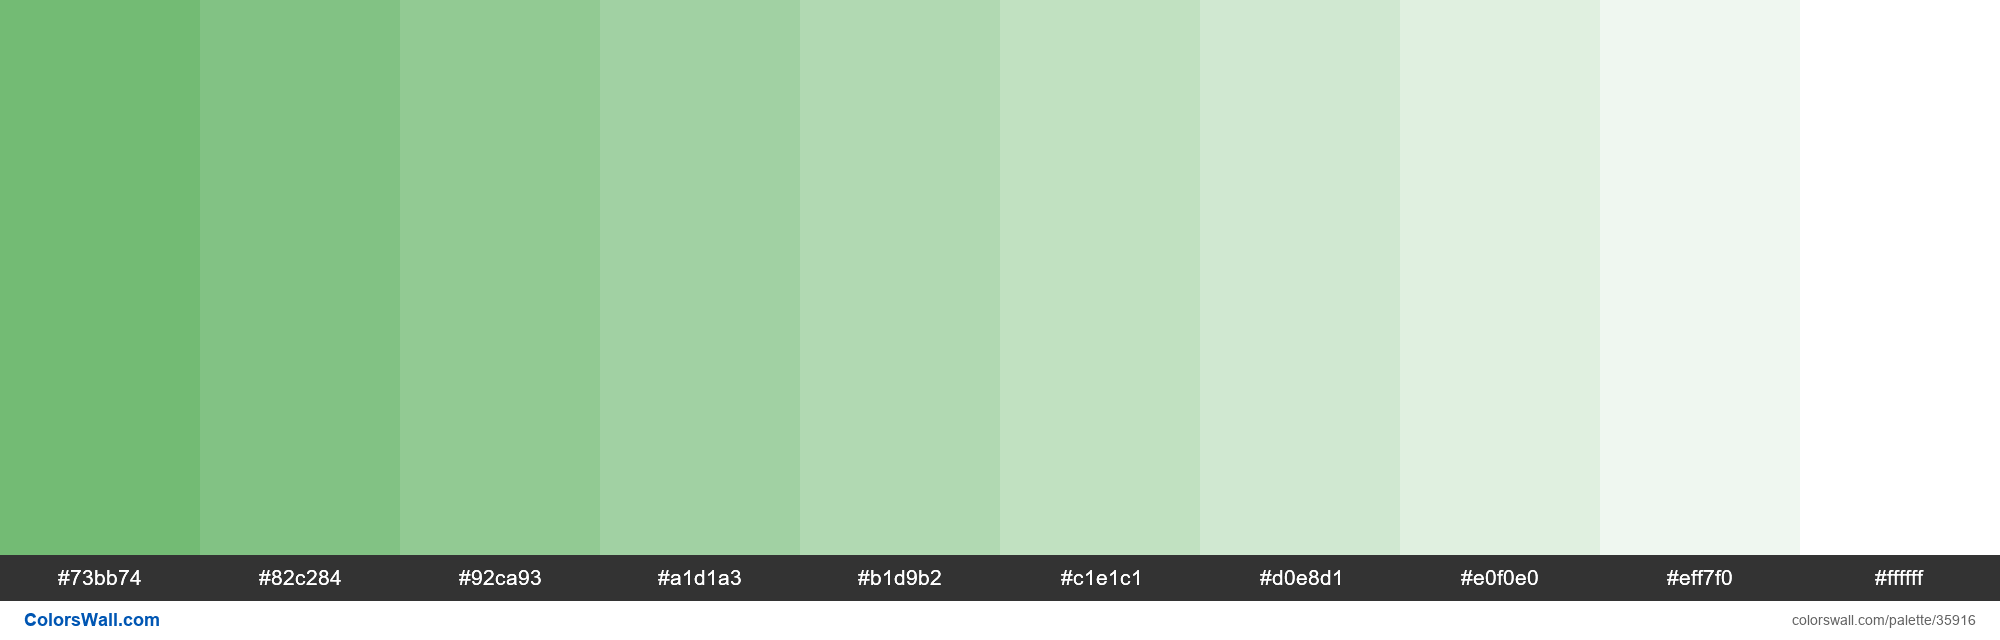 Tints XKCD Color boring green #63b365 hex - #35916